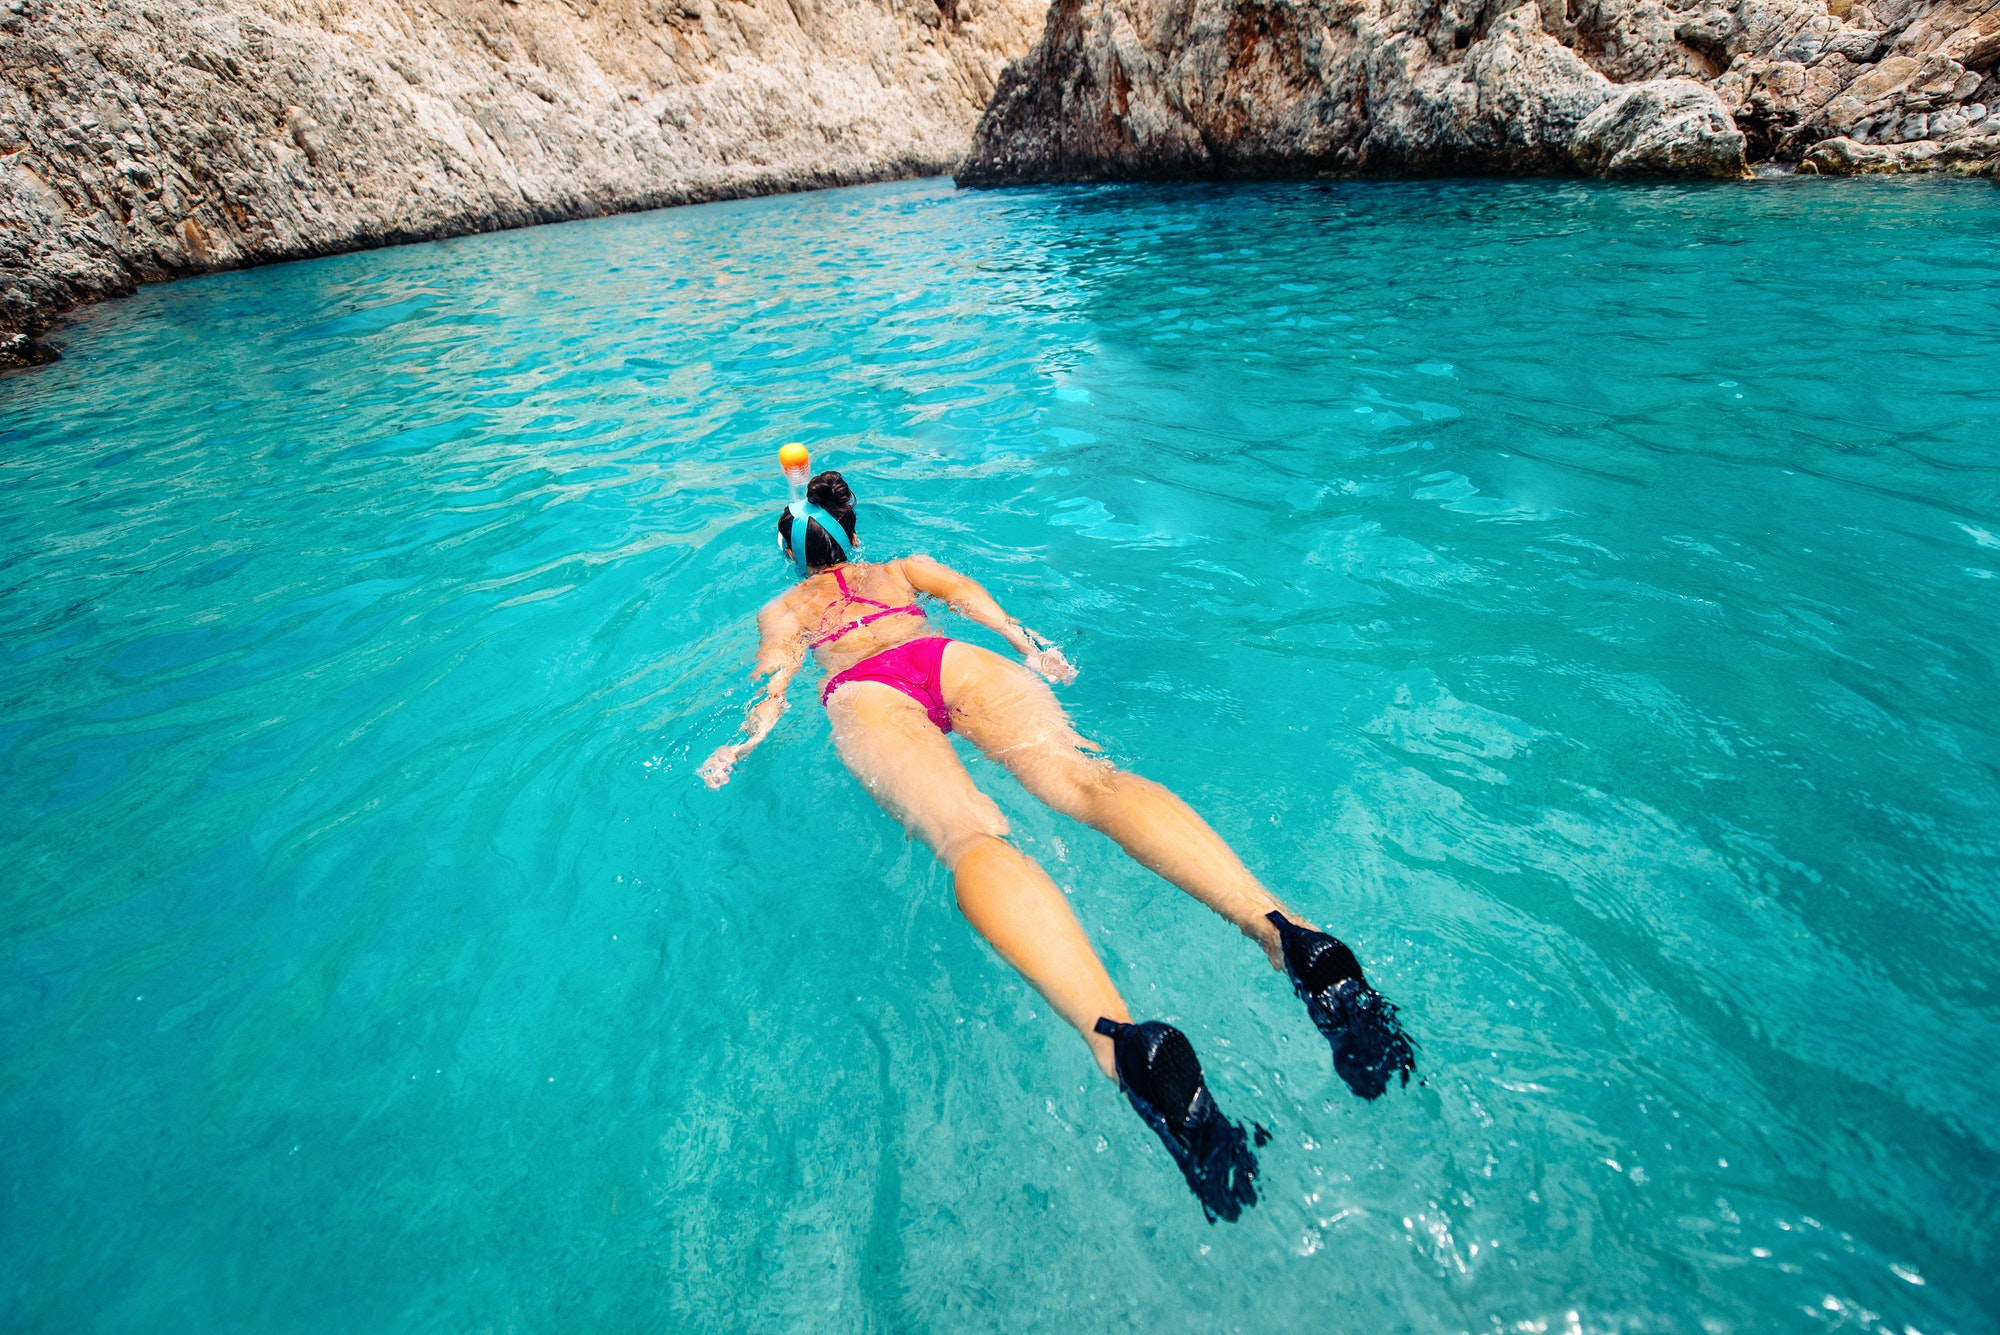 Snorkeling details, woman looking for coral reef in tropical island